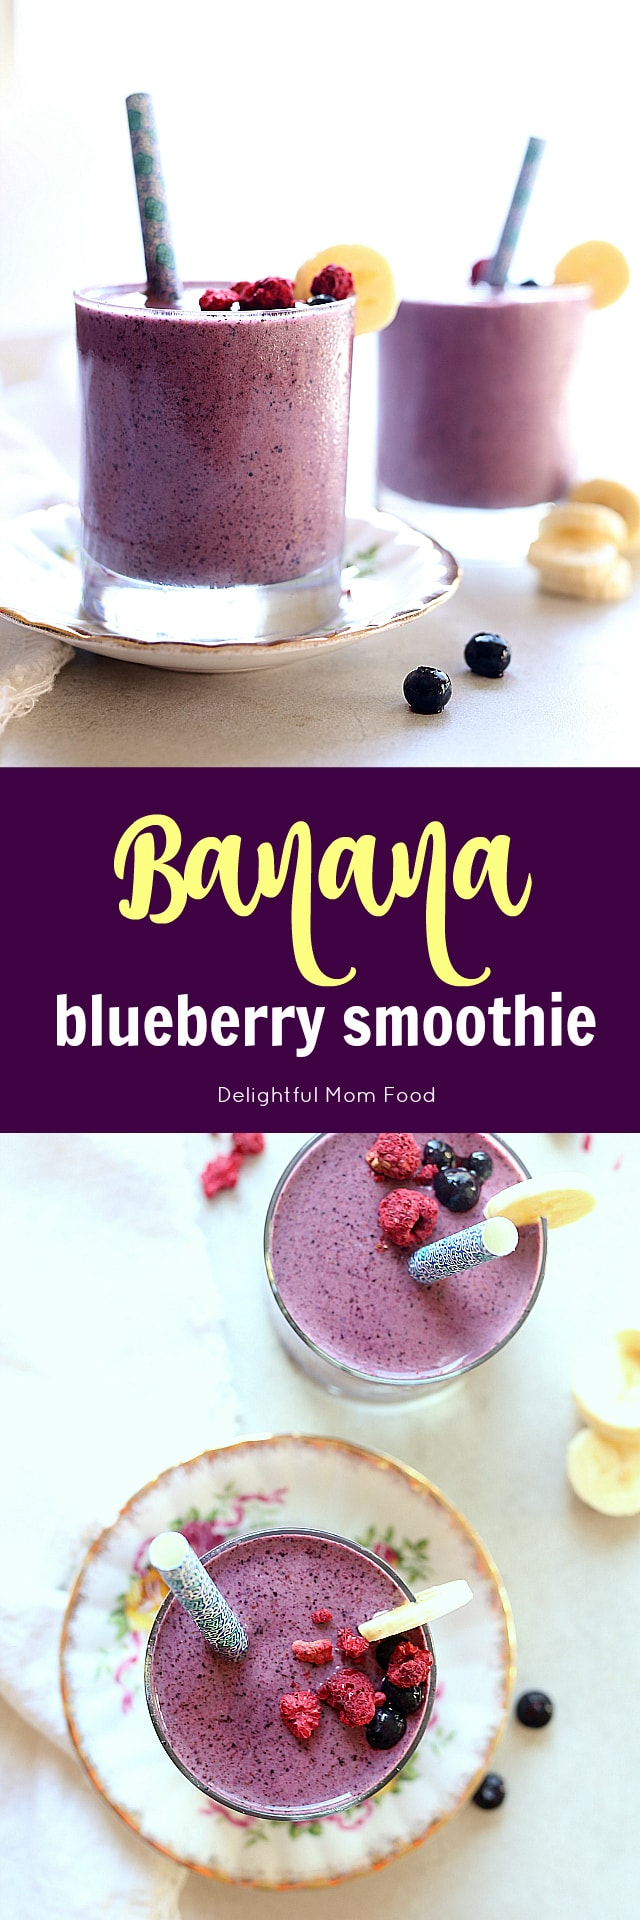 Quick and simple healthy blueberry banana smoothie recipe! To make this gorgeous indigo colored blueberry smoothie add dairy-free milk to the blender with frozen blueberries, banana and two extra secret ingredients to give you the perfect balance of energy that will last for hours!